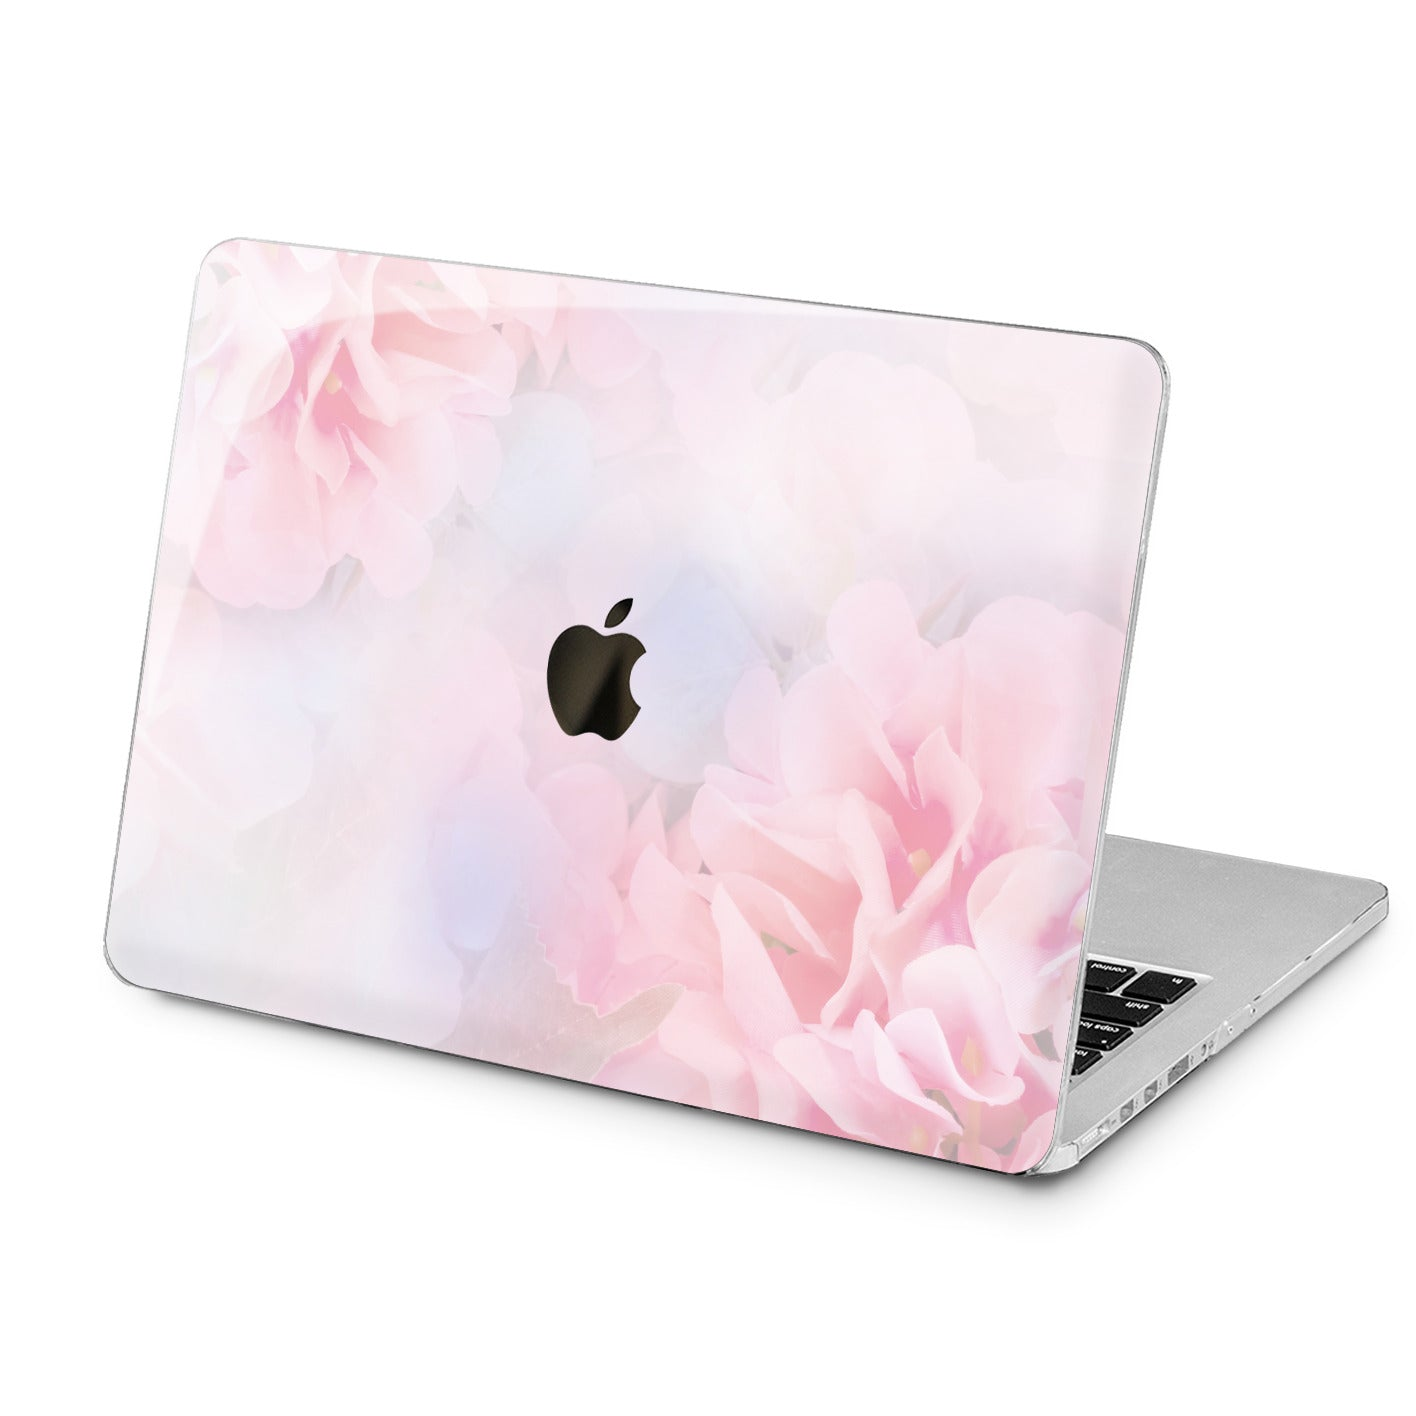 Lex Altern Lex Altern Gentle Floral Theme Case for your Laptop Apple Macbook.